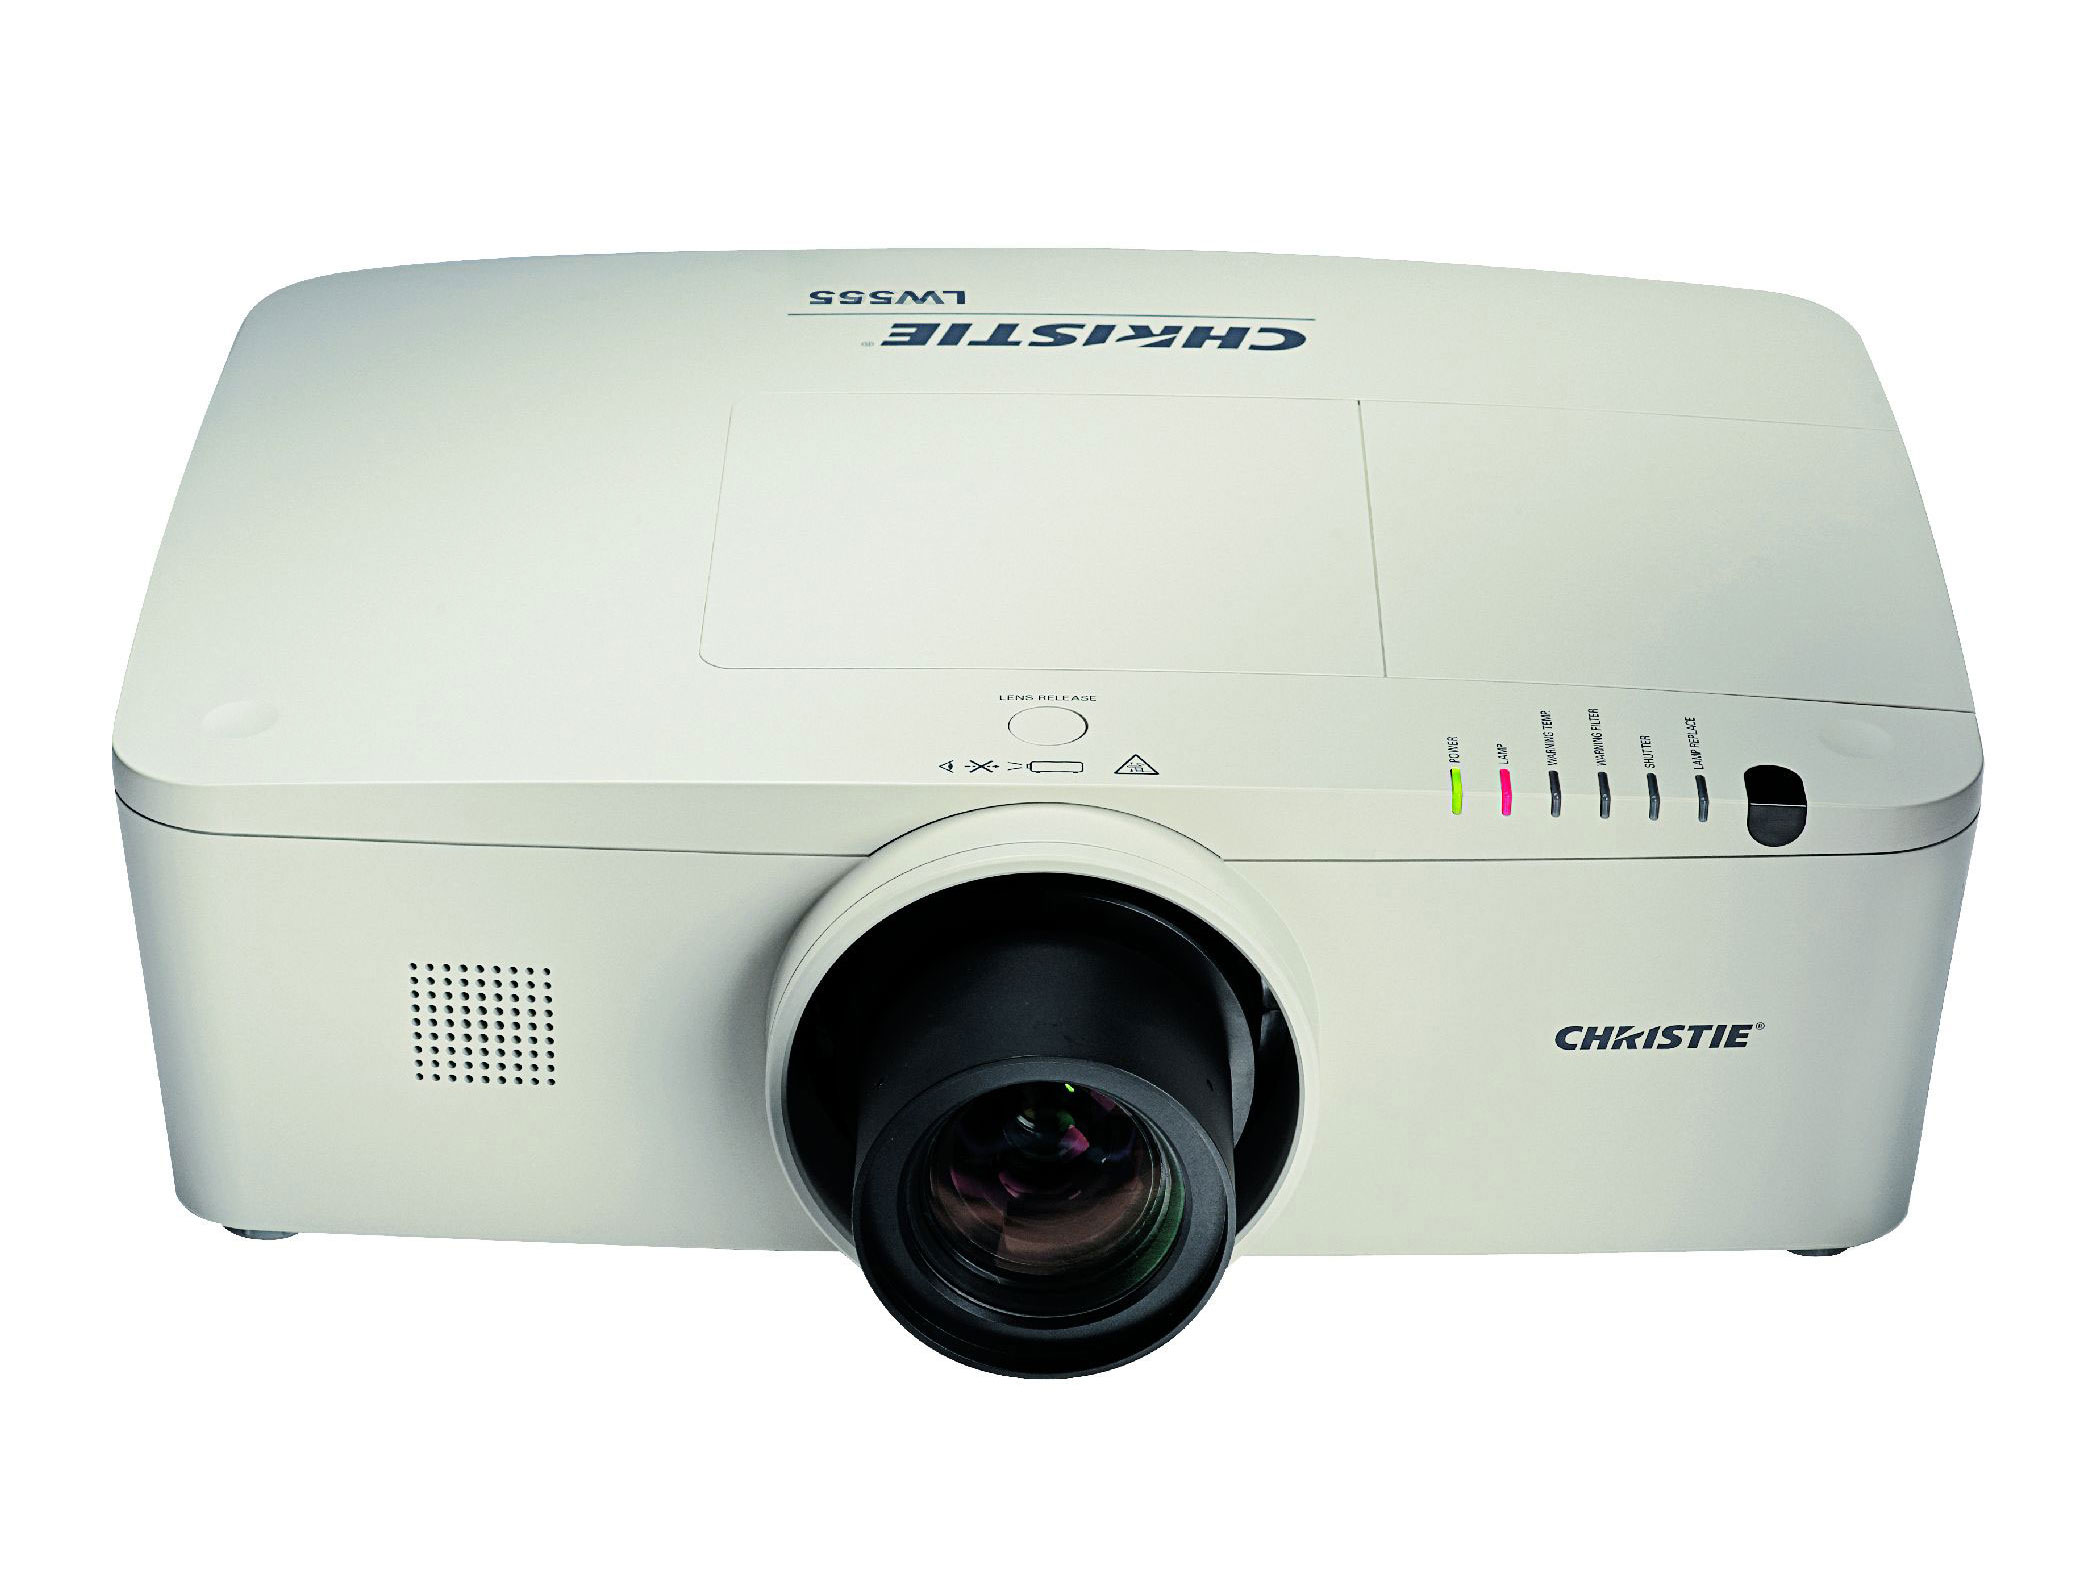 /globalassets/.catalog/products/images/christie-lw555/gallery/christie-lw555-lcd-digital-projector-image8.jpg